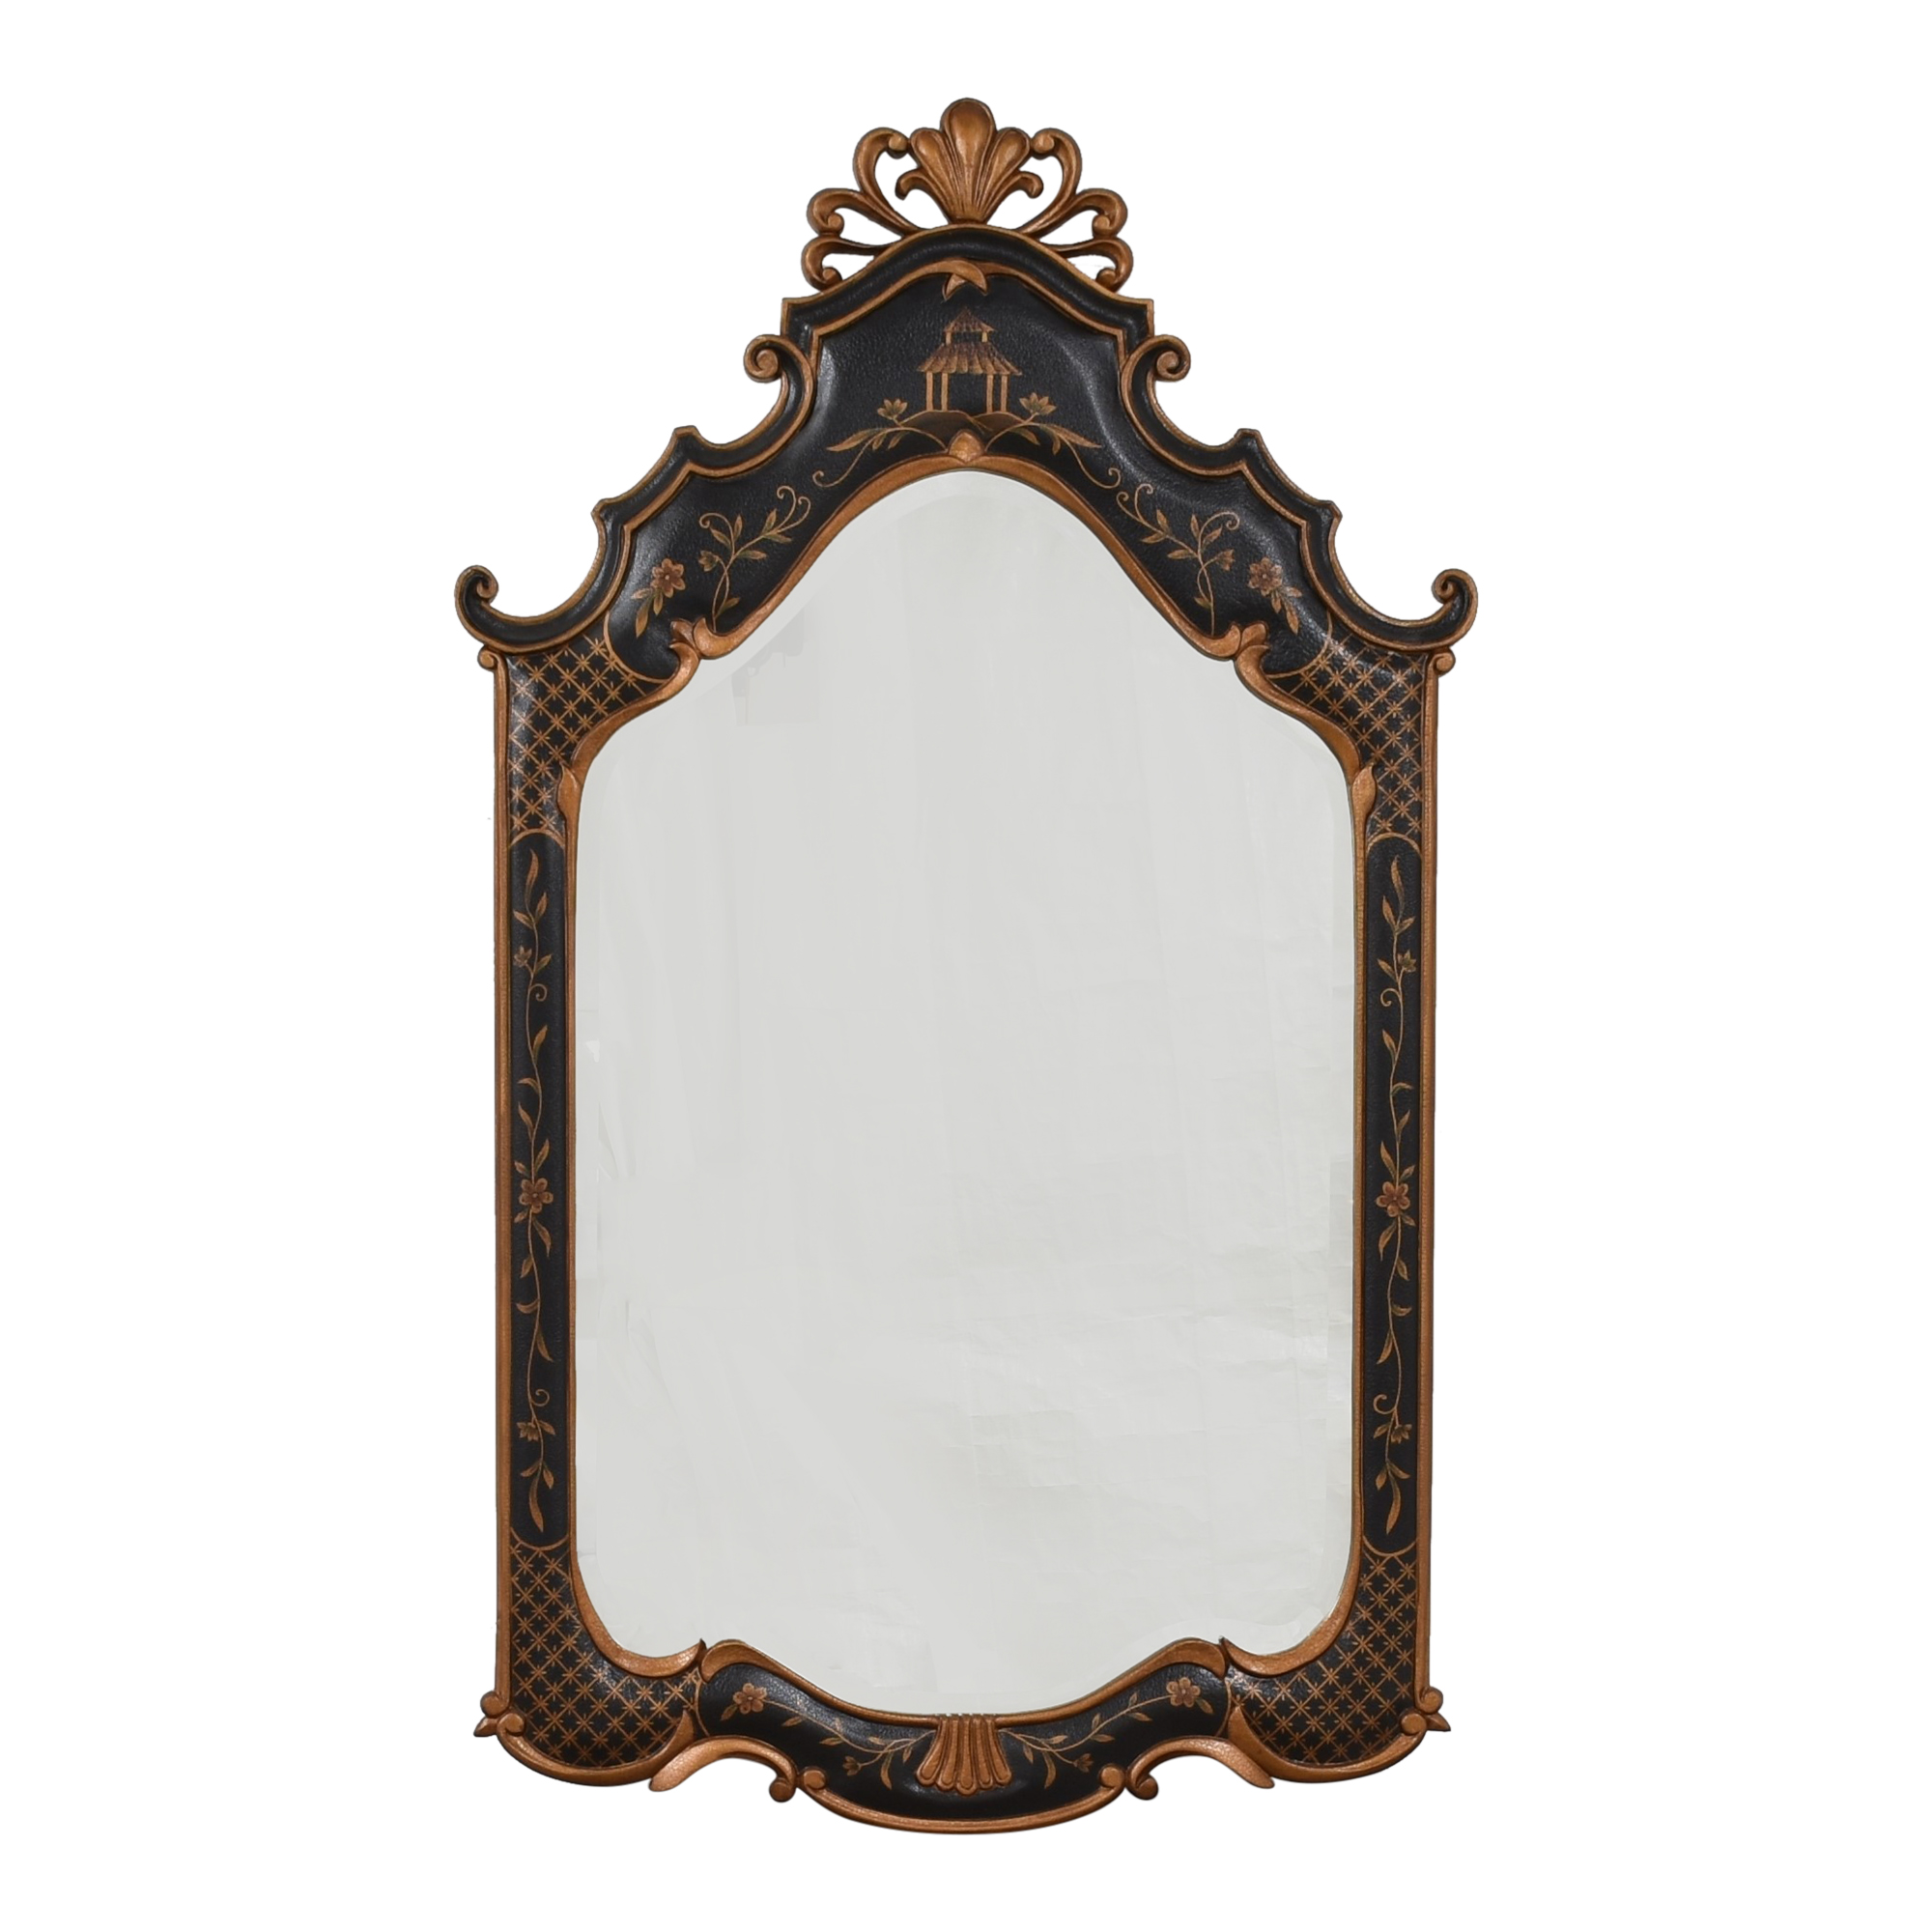 Decorative Carved Frame Wall Mirror / Mirrors